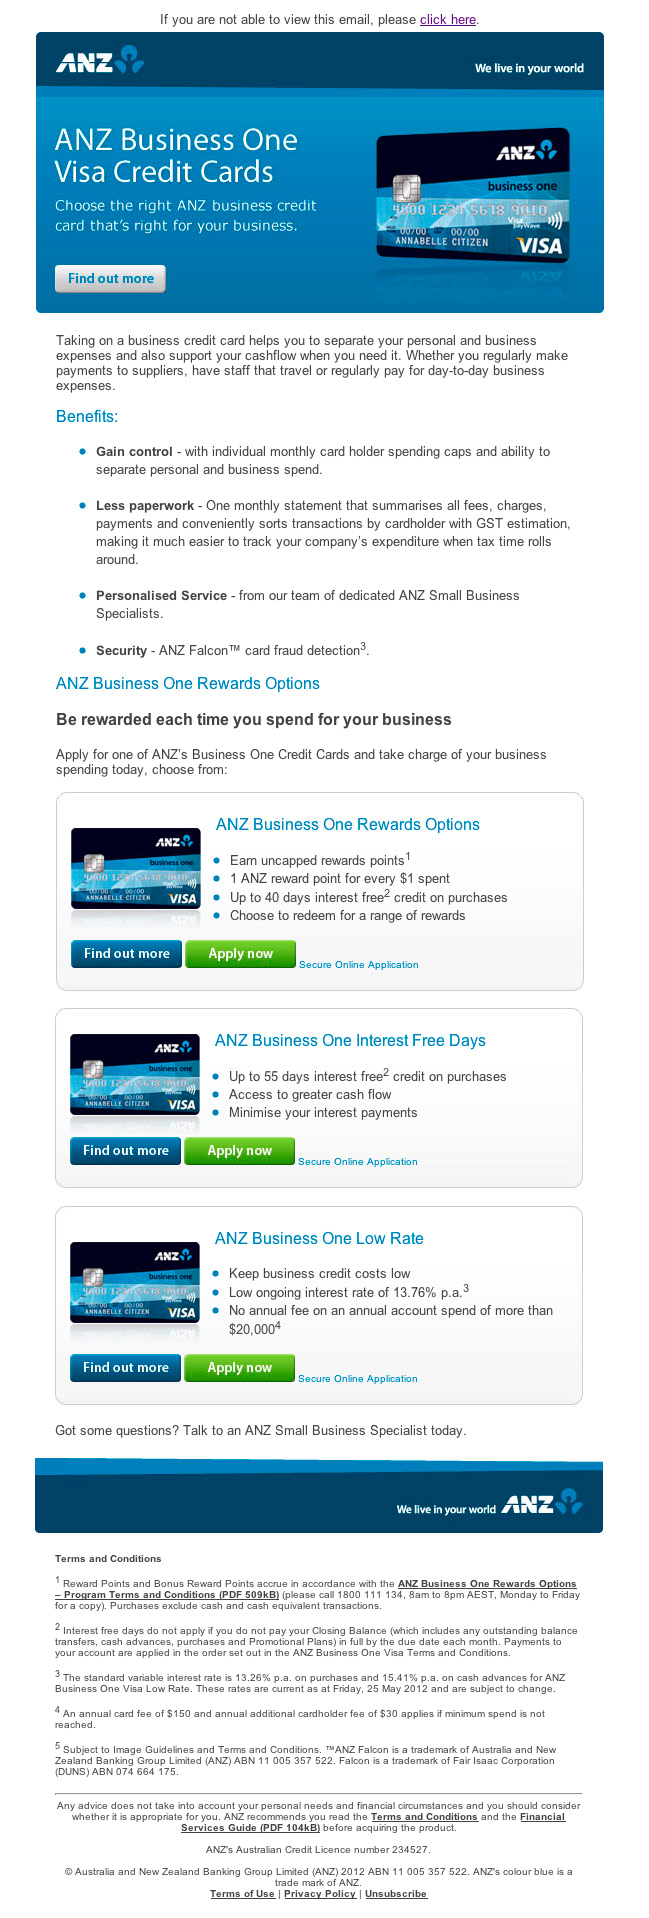 Martyn miller anz business credit cards anz business credit card digital campaign launch 2012 reheart